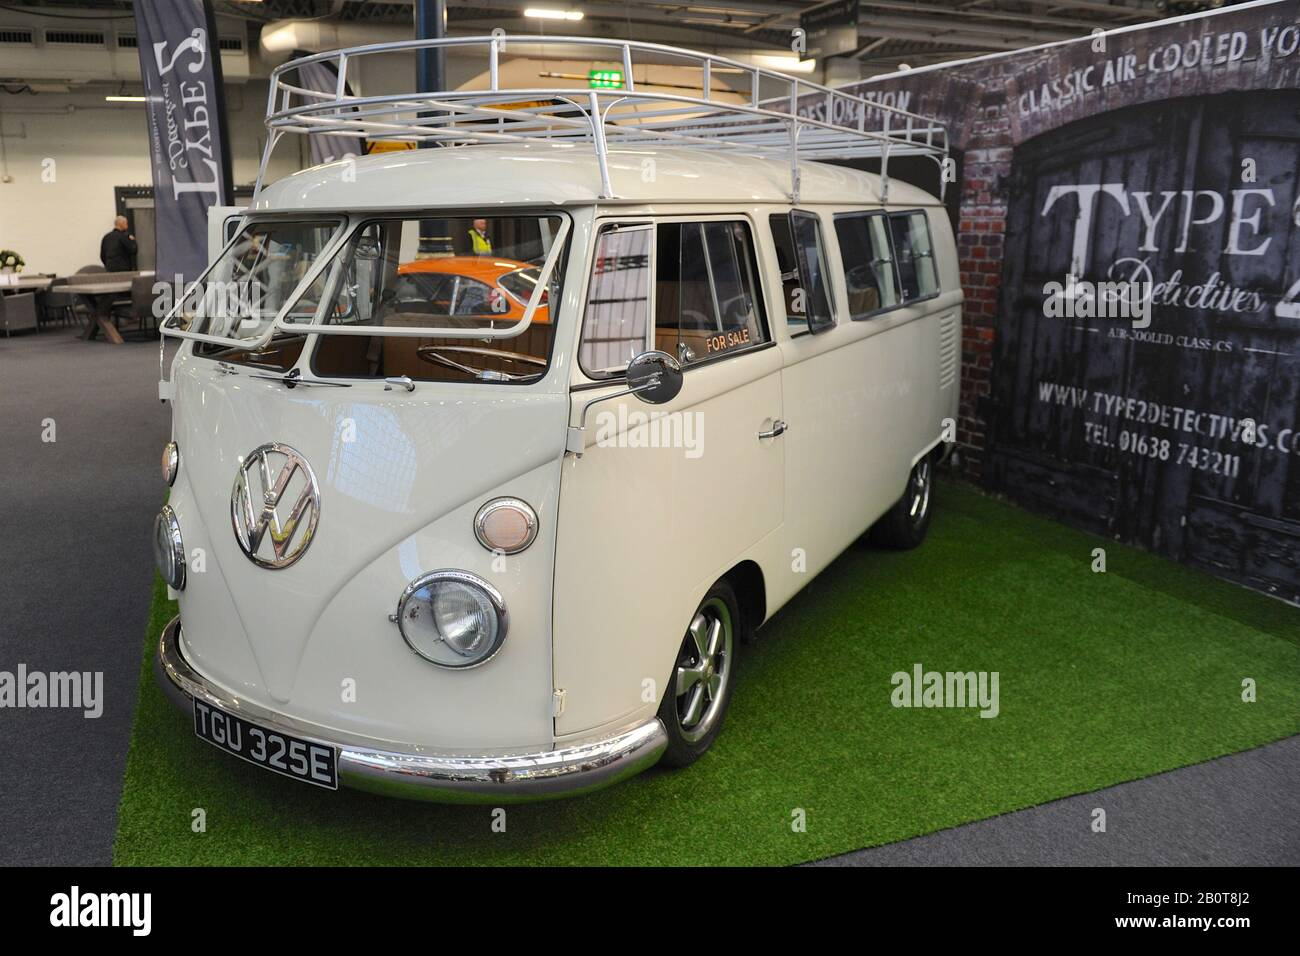 a vintage vw camper van on display at the london classic car show which opened today https www alamy com a vintage vw camper van on display at the london classic car show which opened today in olympia london united kingdom more than 500 of the worlds finest classic cars and marques worth 70 million are on display at the show ranging from vintage pre war tourers to a modern concept cars the show brings in around 20000 visitors ranging from serious petrol heads to people who just love beautiful and classic vehicles image344740986 html